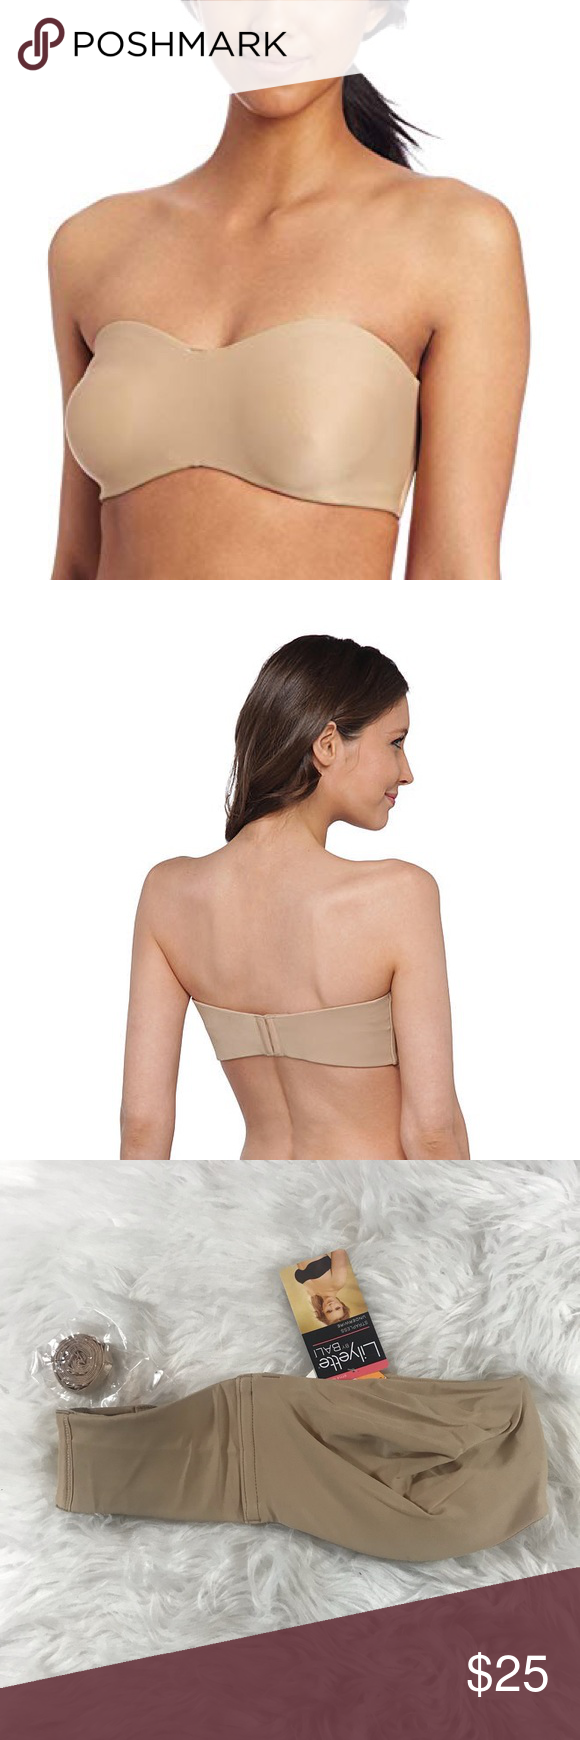 240d47208b NWT Lilyette by Bali Strapless Minimizer Bra 34DD Brand new with tags  minimizing strapless bra from Lilyette by Bali. Size 34DD. Great support!